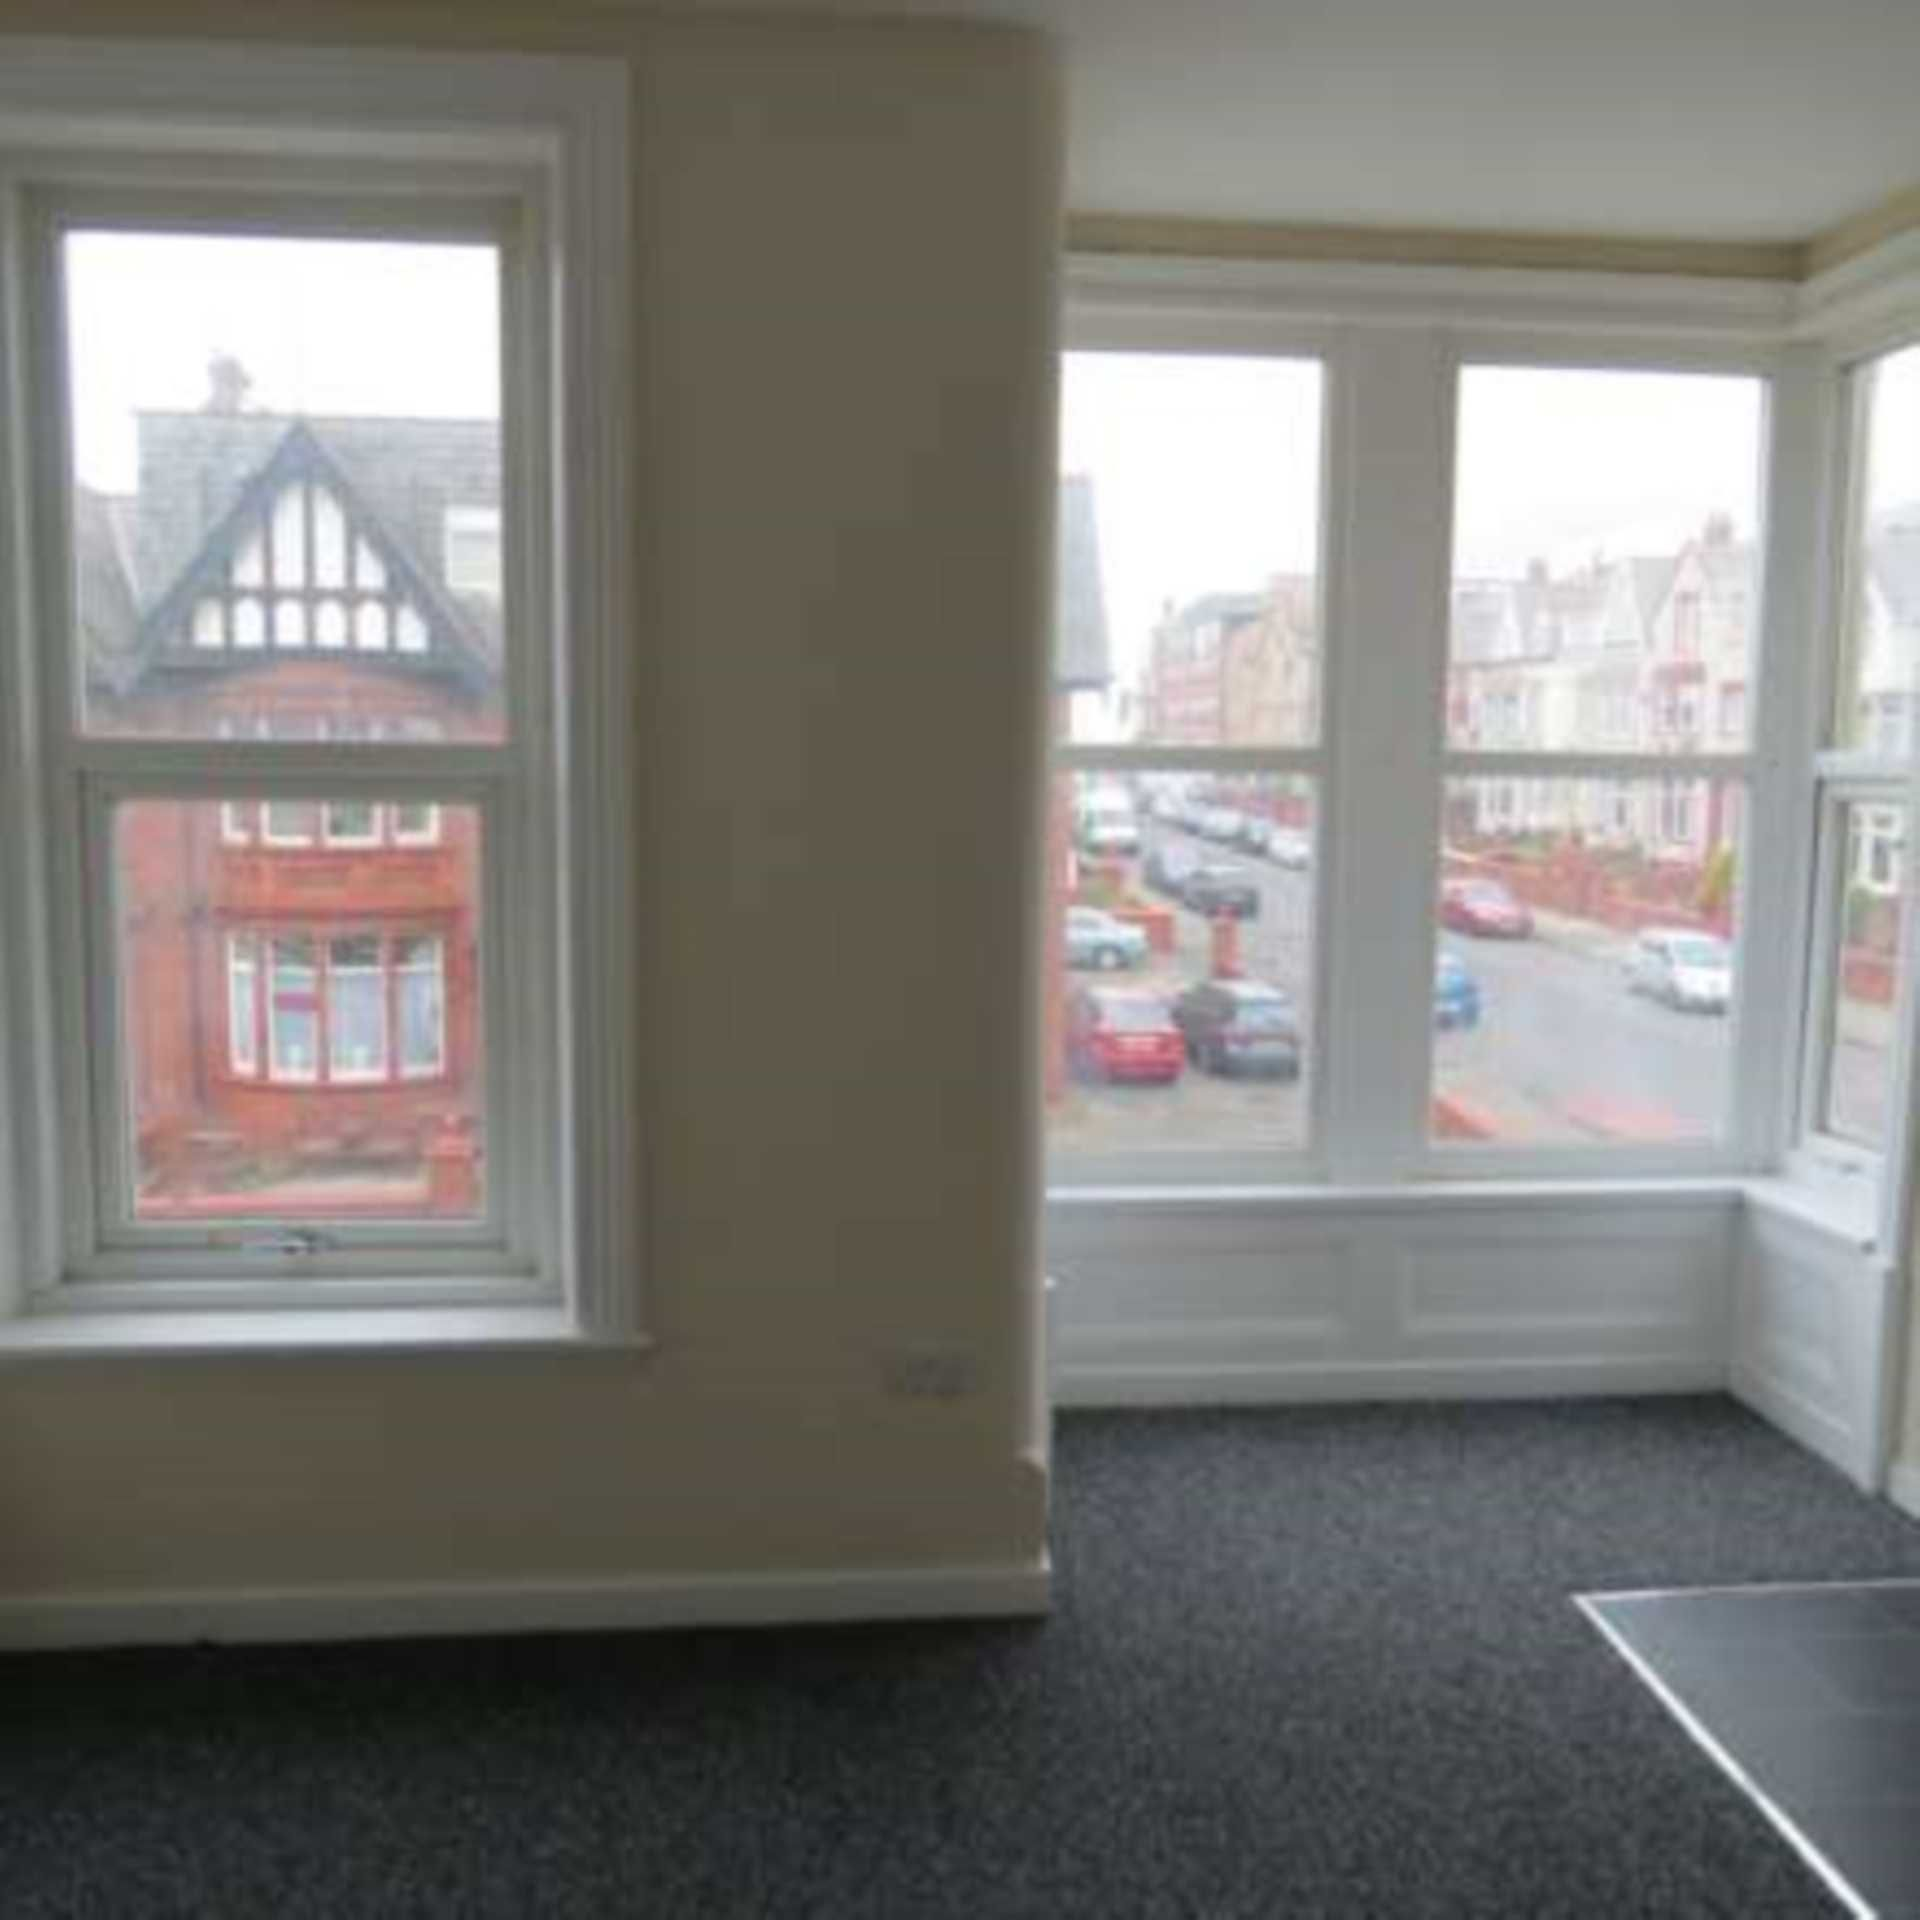 1 Bedroom Studio For Rent: 1 Bedroom Studio Flat To Rent, Holmfield Road, Blackpool